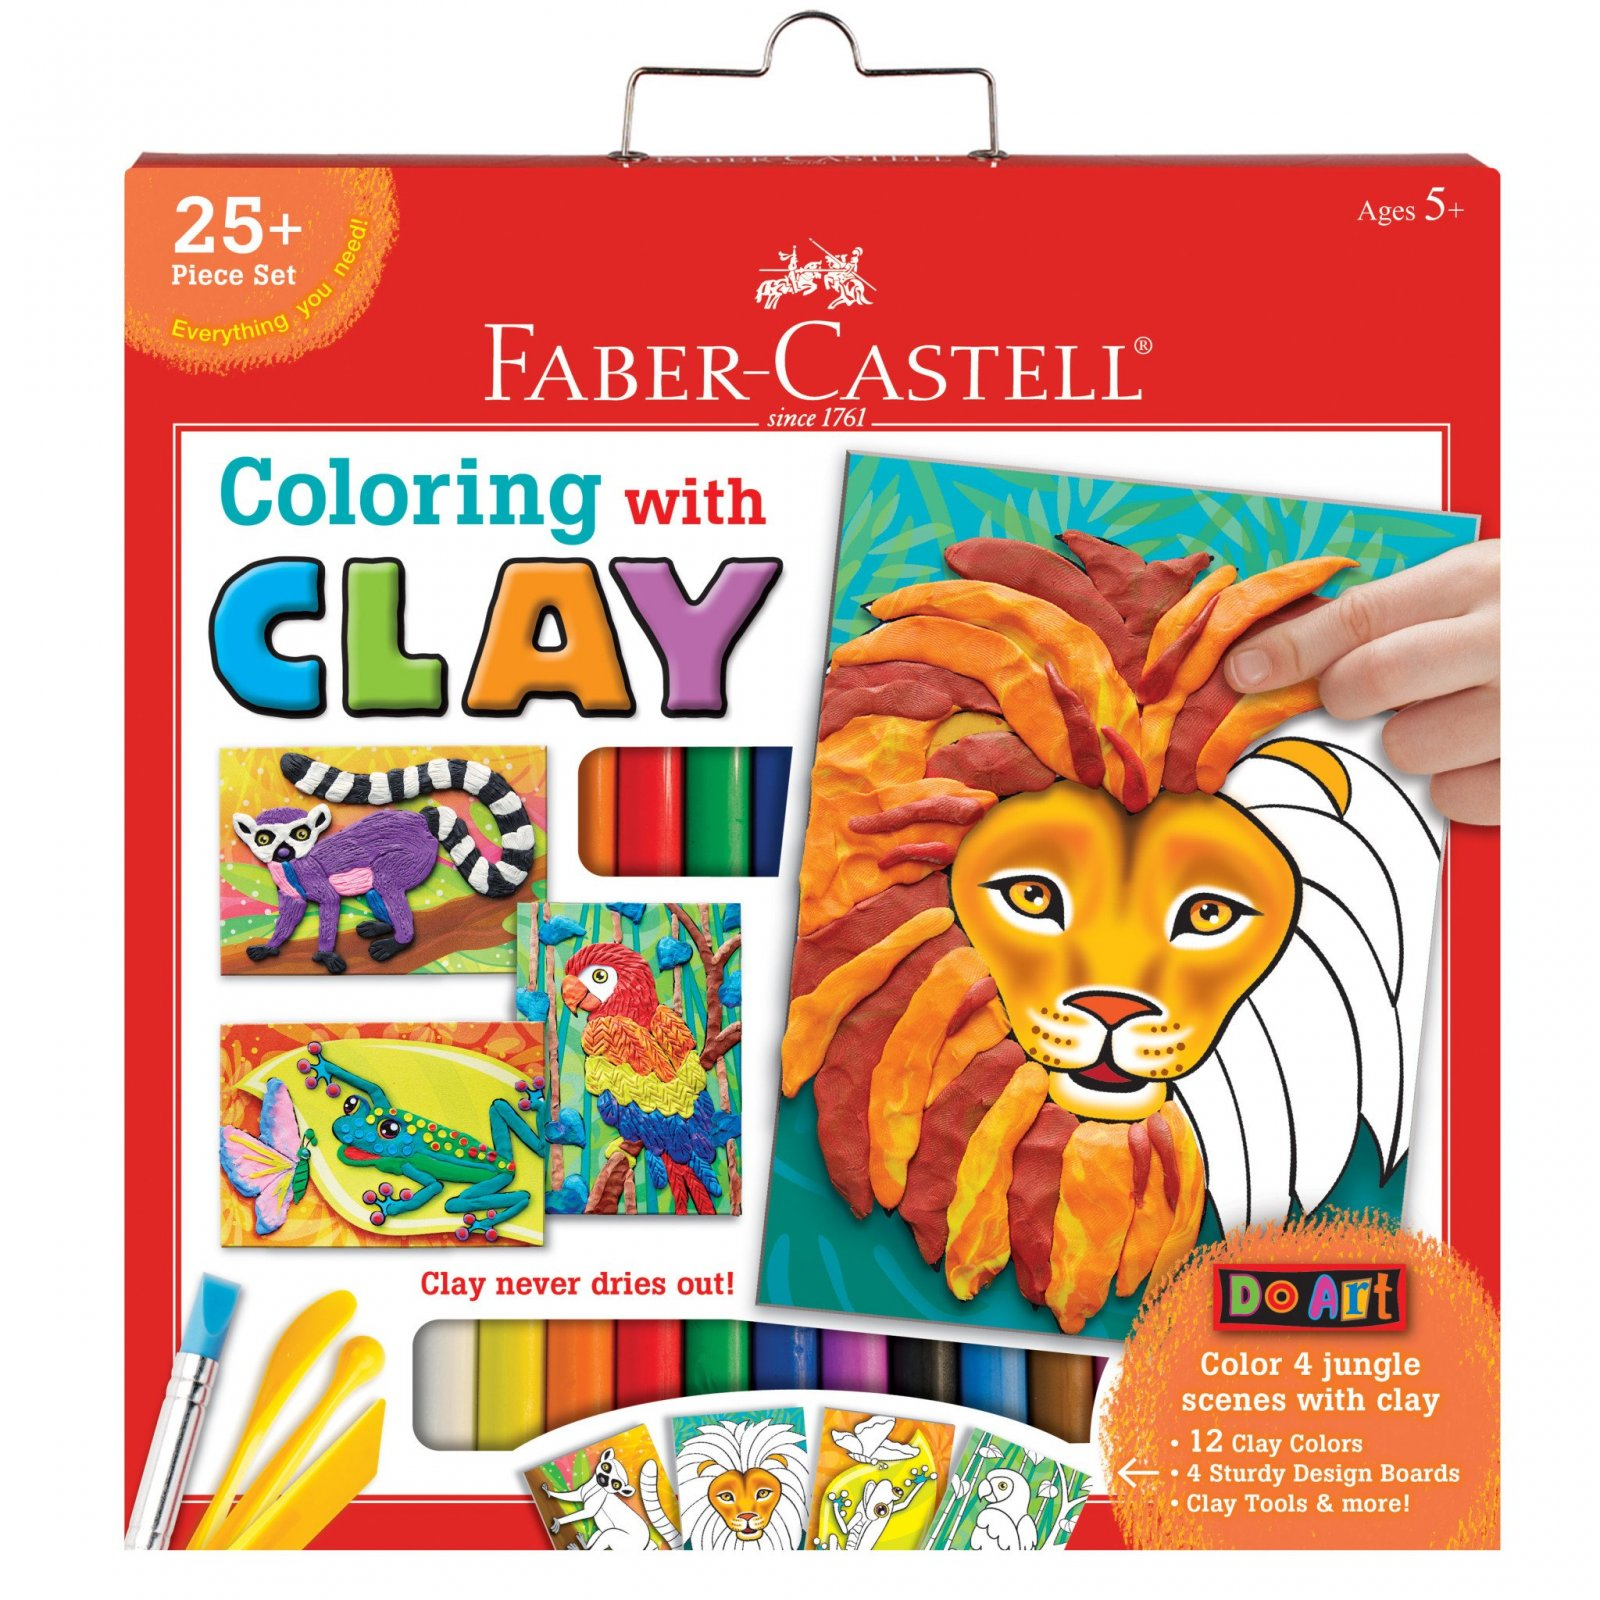 Faber-Castell Coloring with Clay